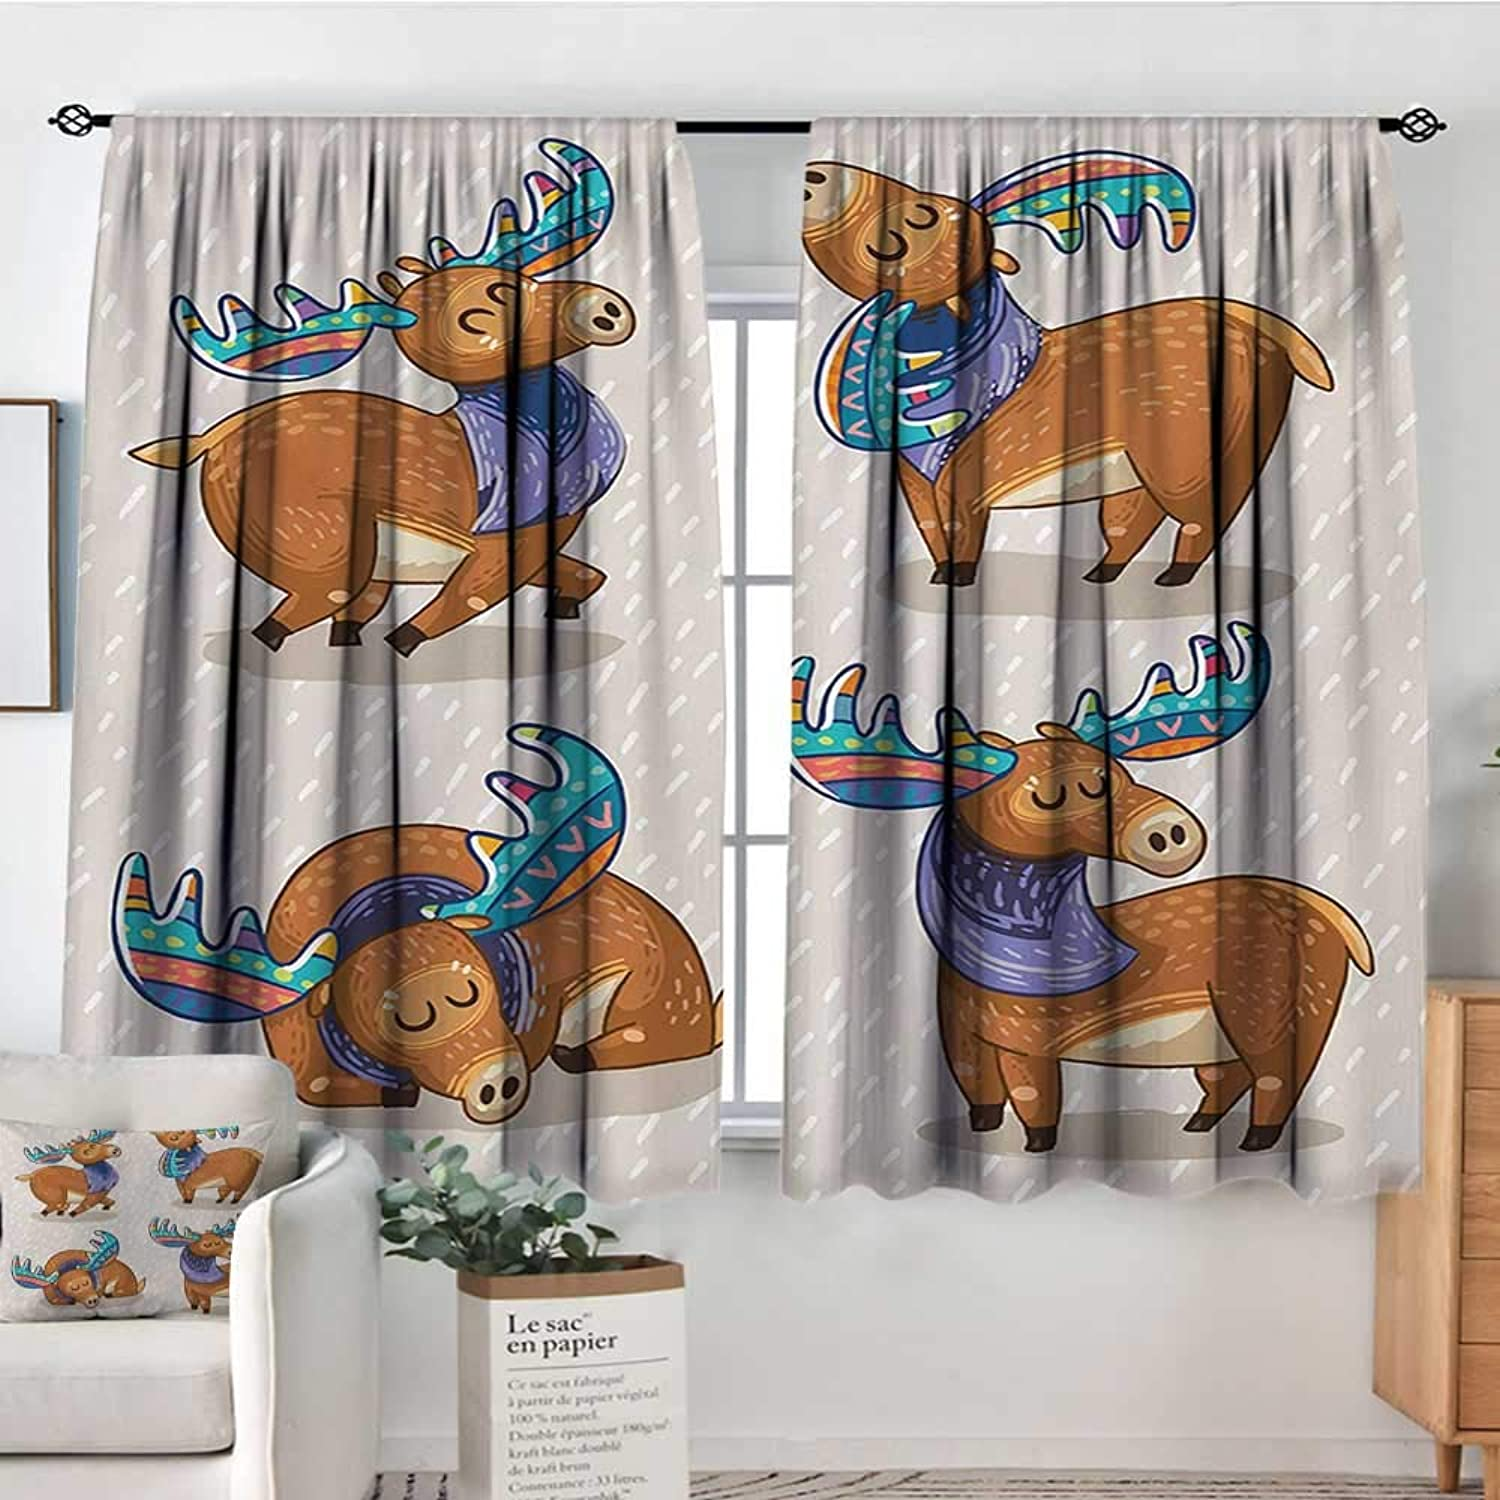 Curtains for Living Room Moose,Kids Cartoon Inspired Cute Elks with Antlers Friendly Nursery Kids Theme Artwork,Multicolor,Decor Collection Thermal Room Darkening Window Curtains 55 x45